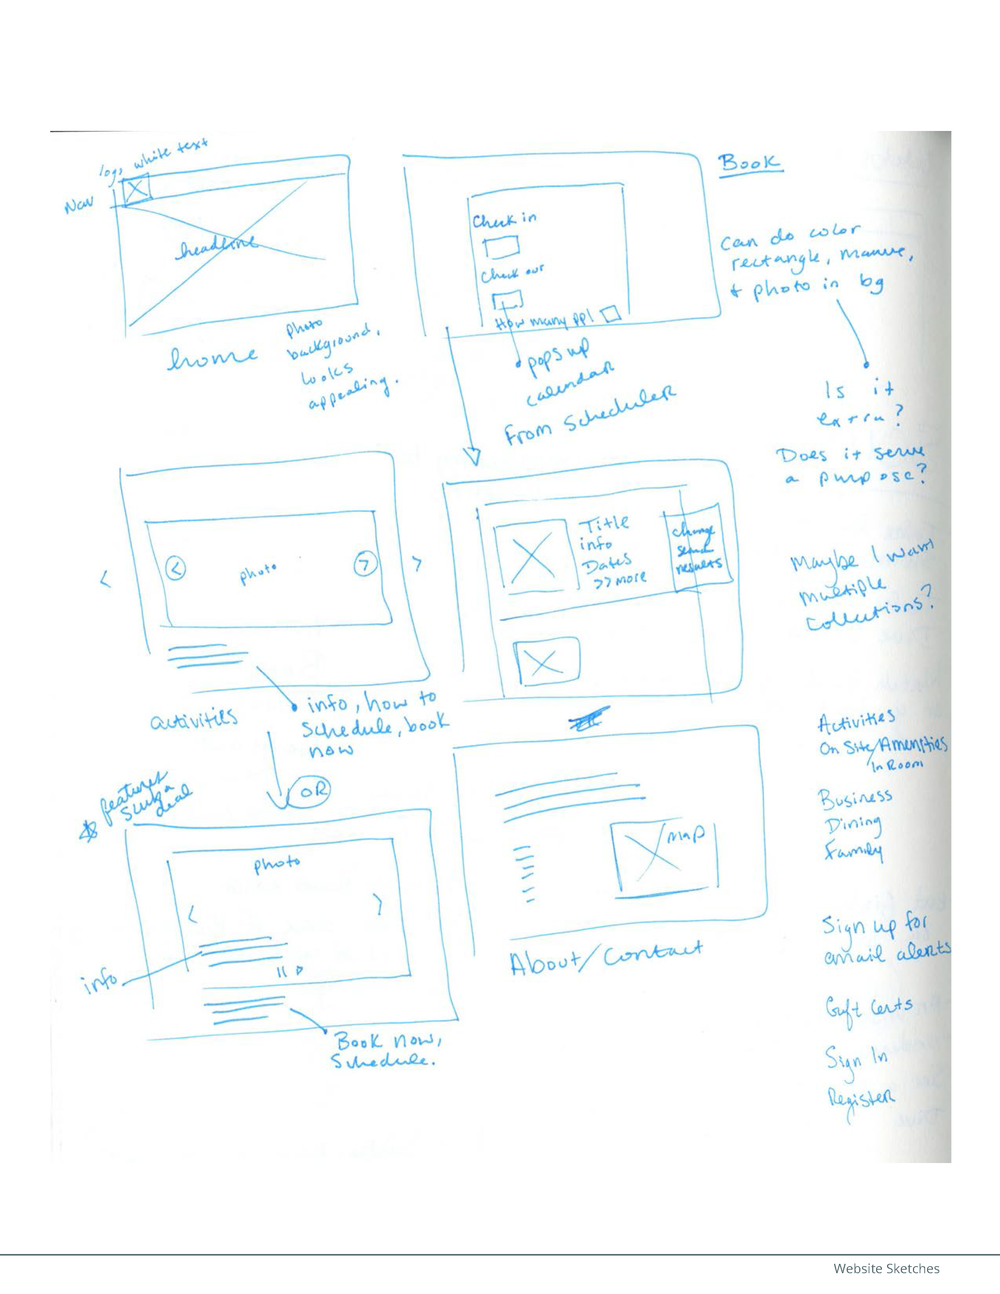 GRDS400_Casem_Project3ProcessBook_F14_Audreybaechle_Page_26.png